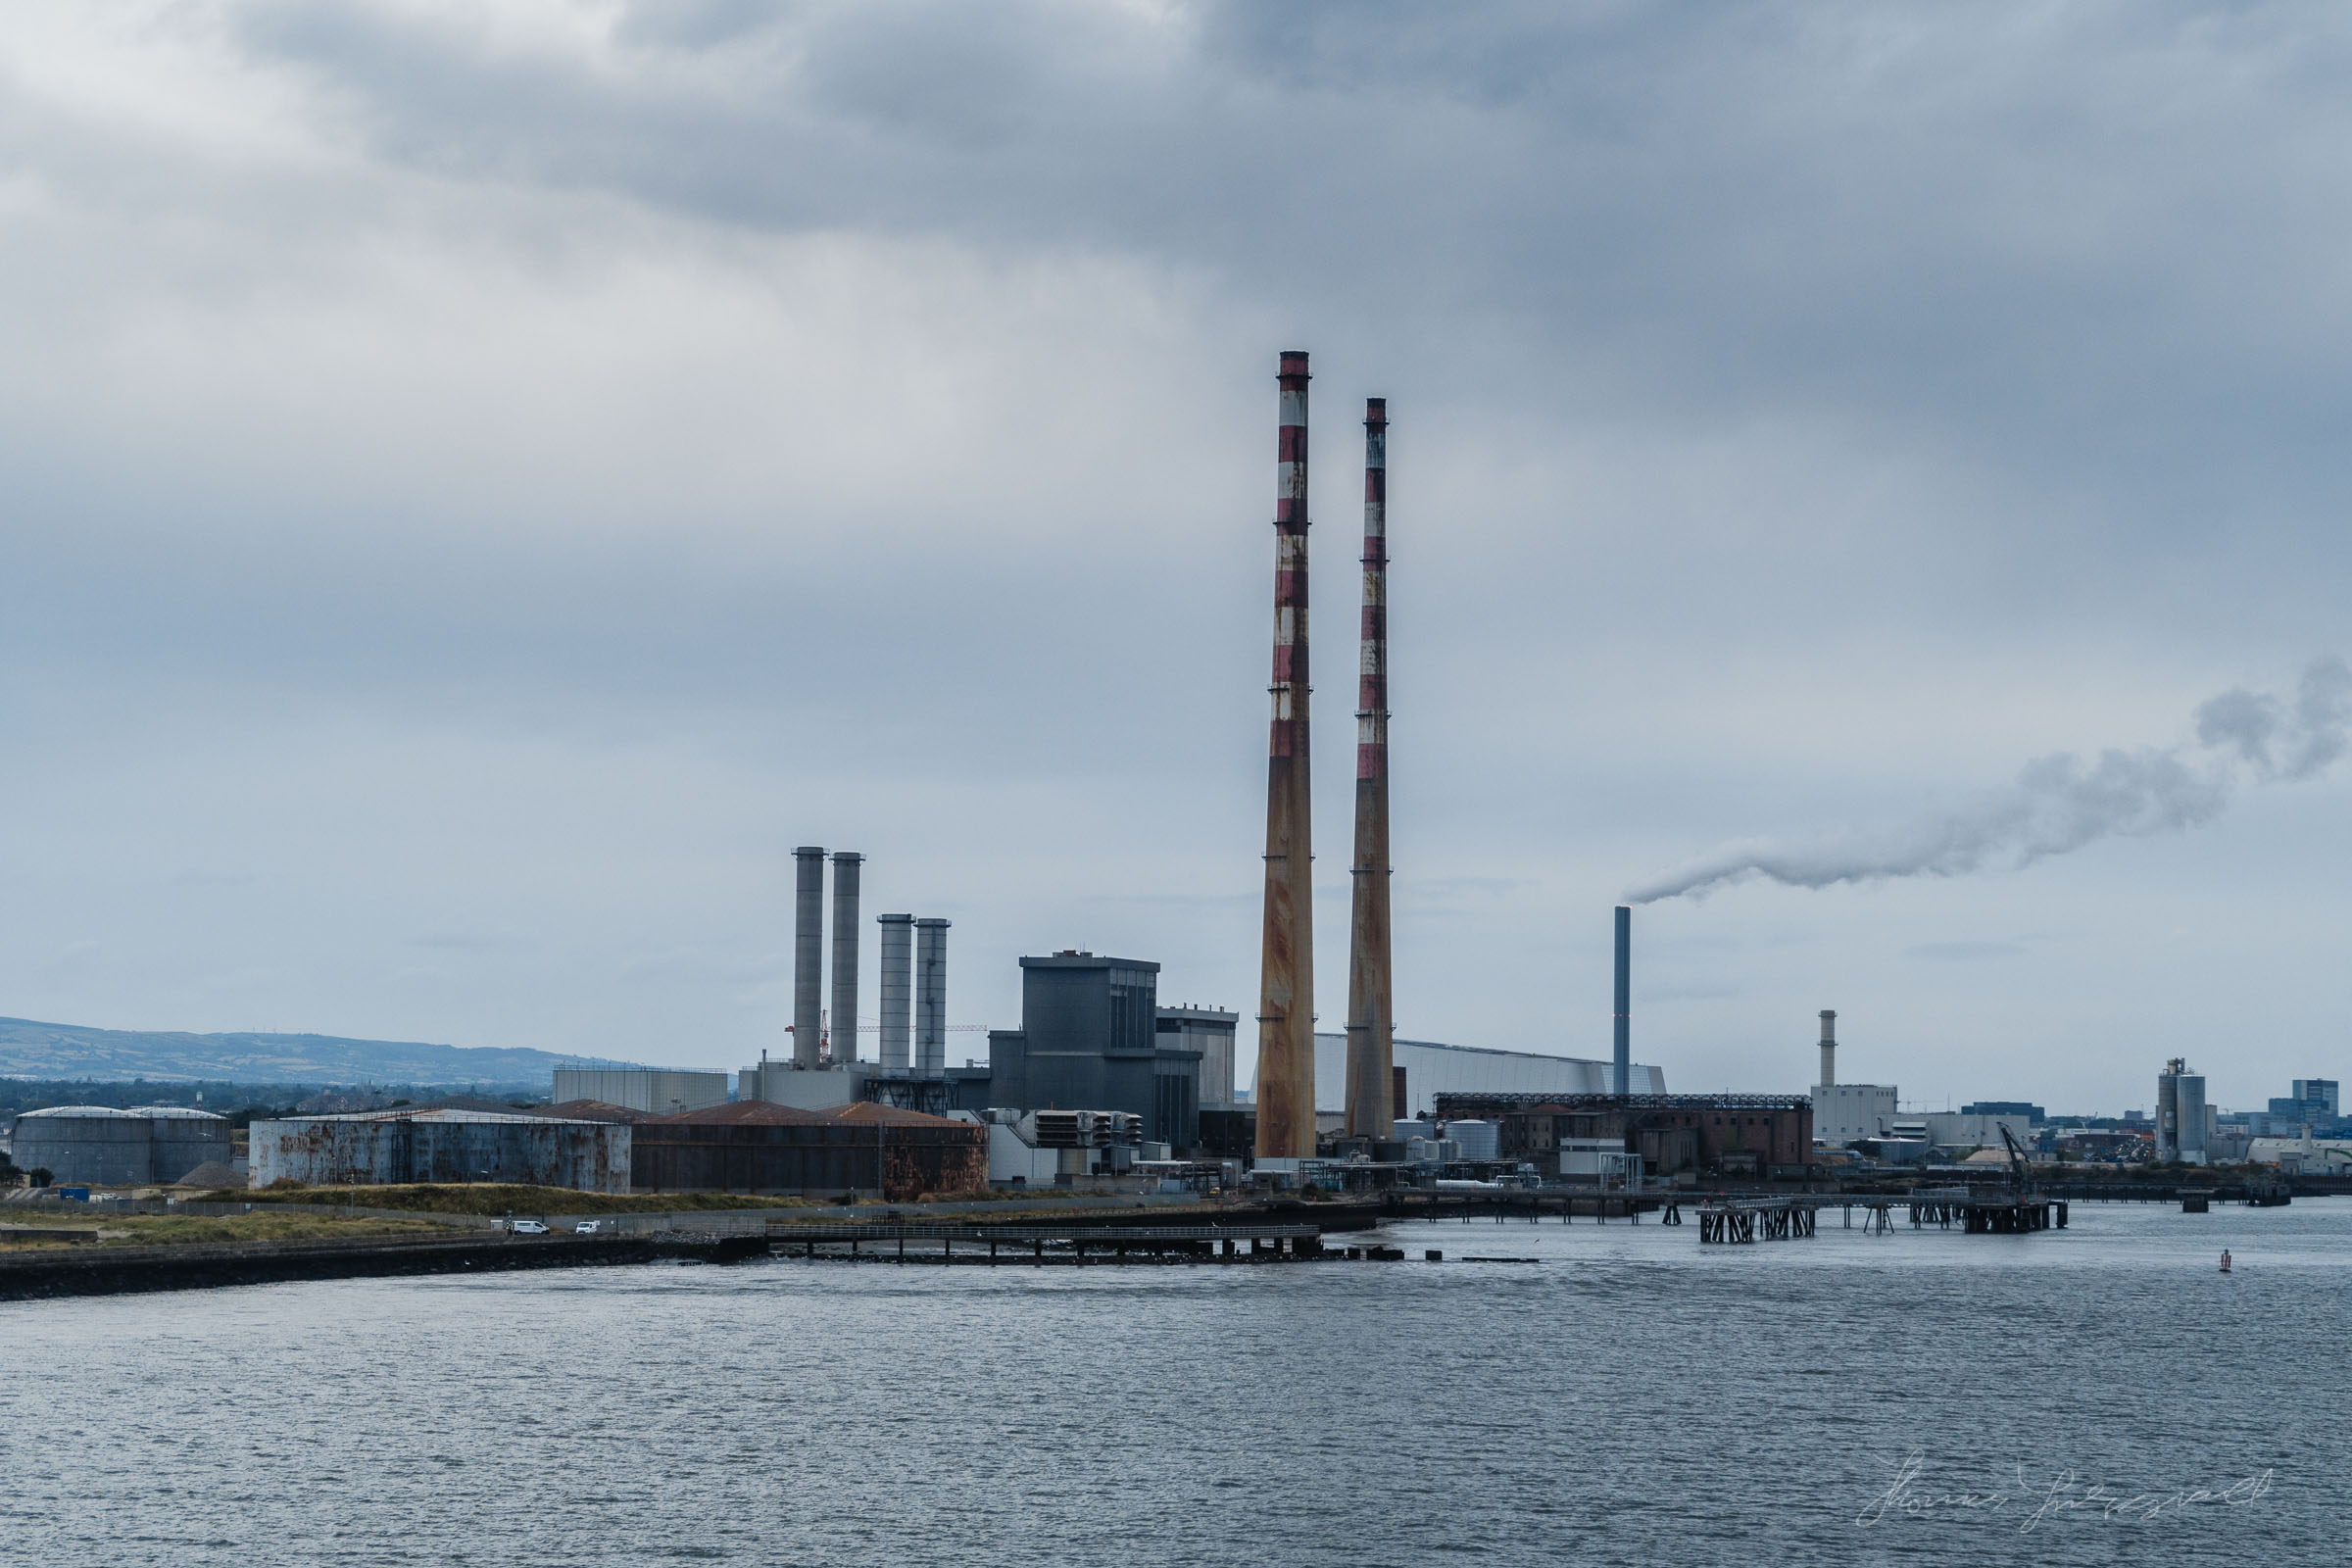 Poolbeg Towers from the river